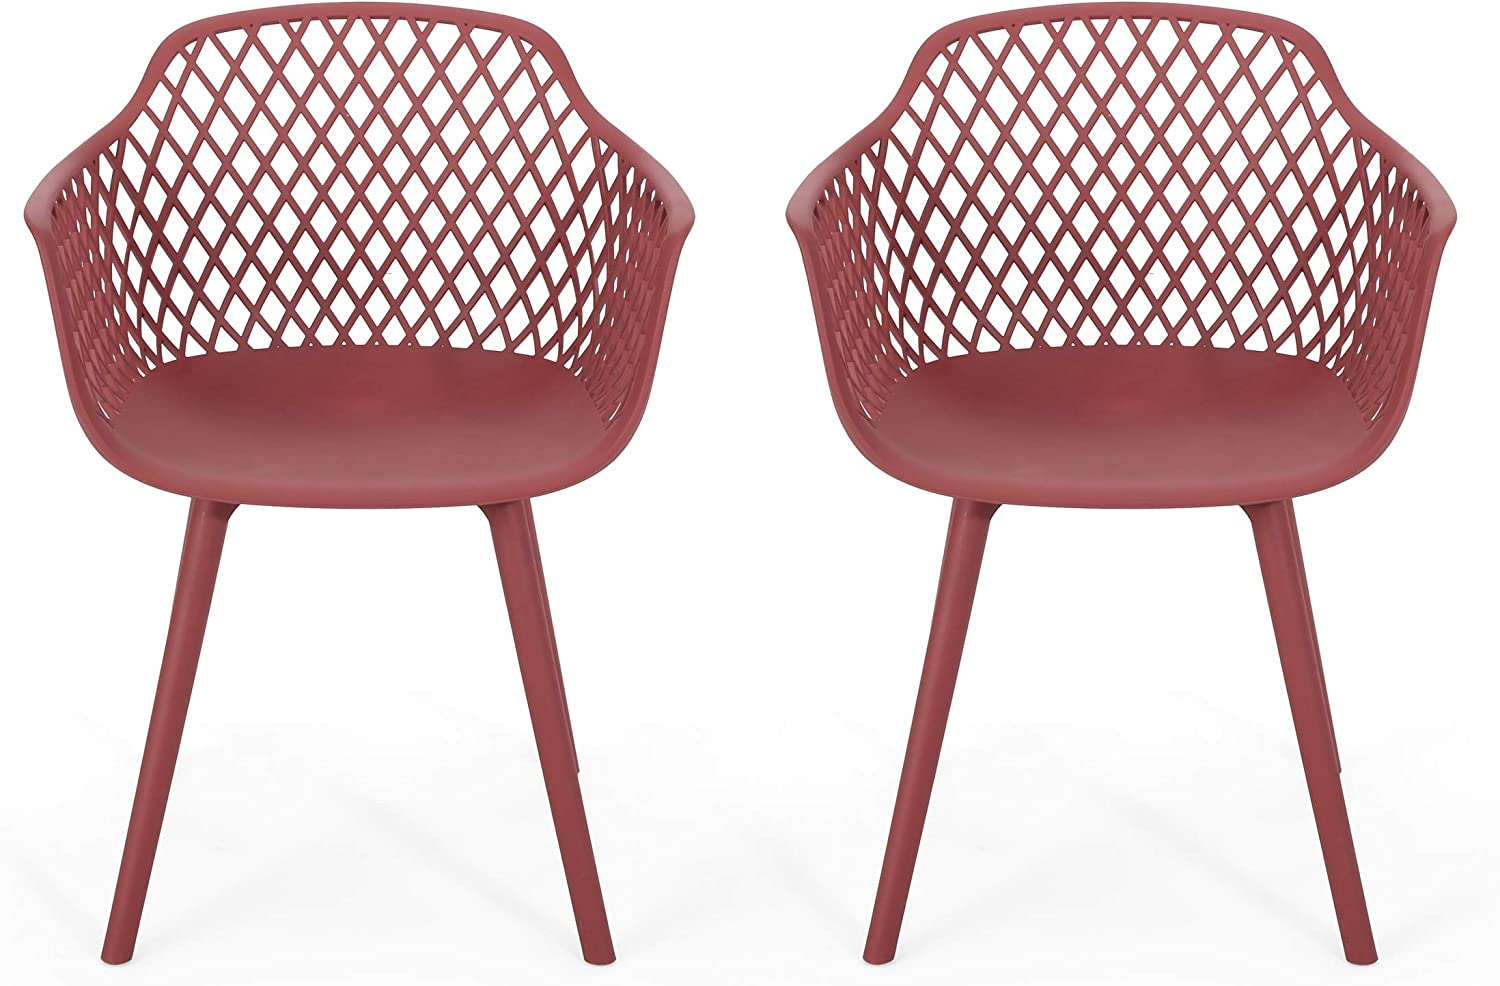 Christopher Knight Home 312470 Delia Outdoor Dining Chair (Set of 2), Red